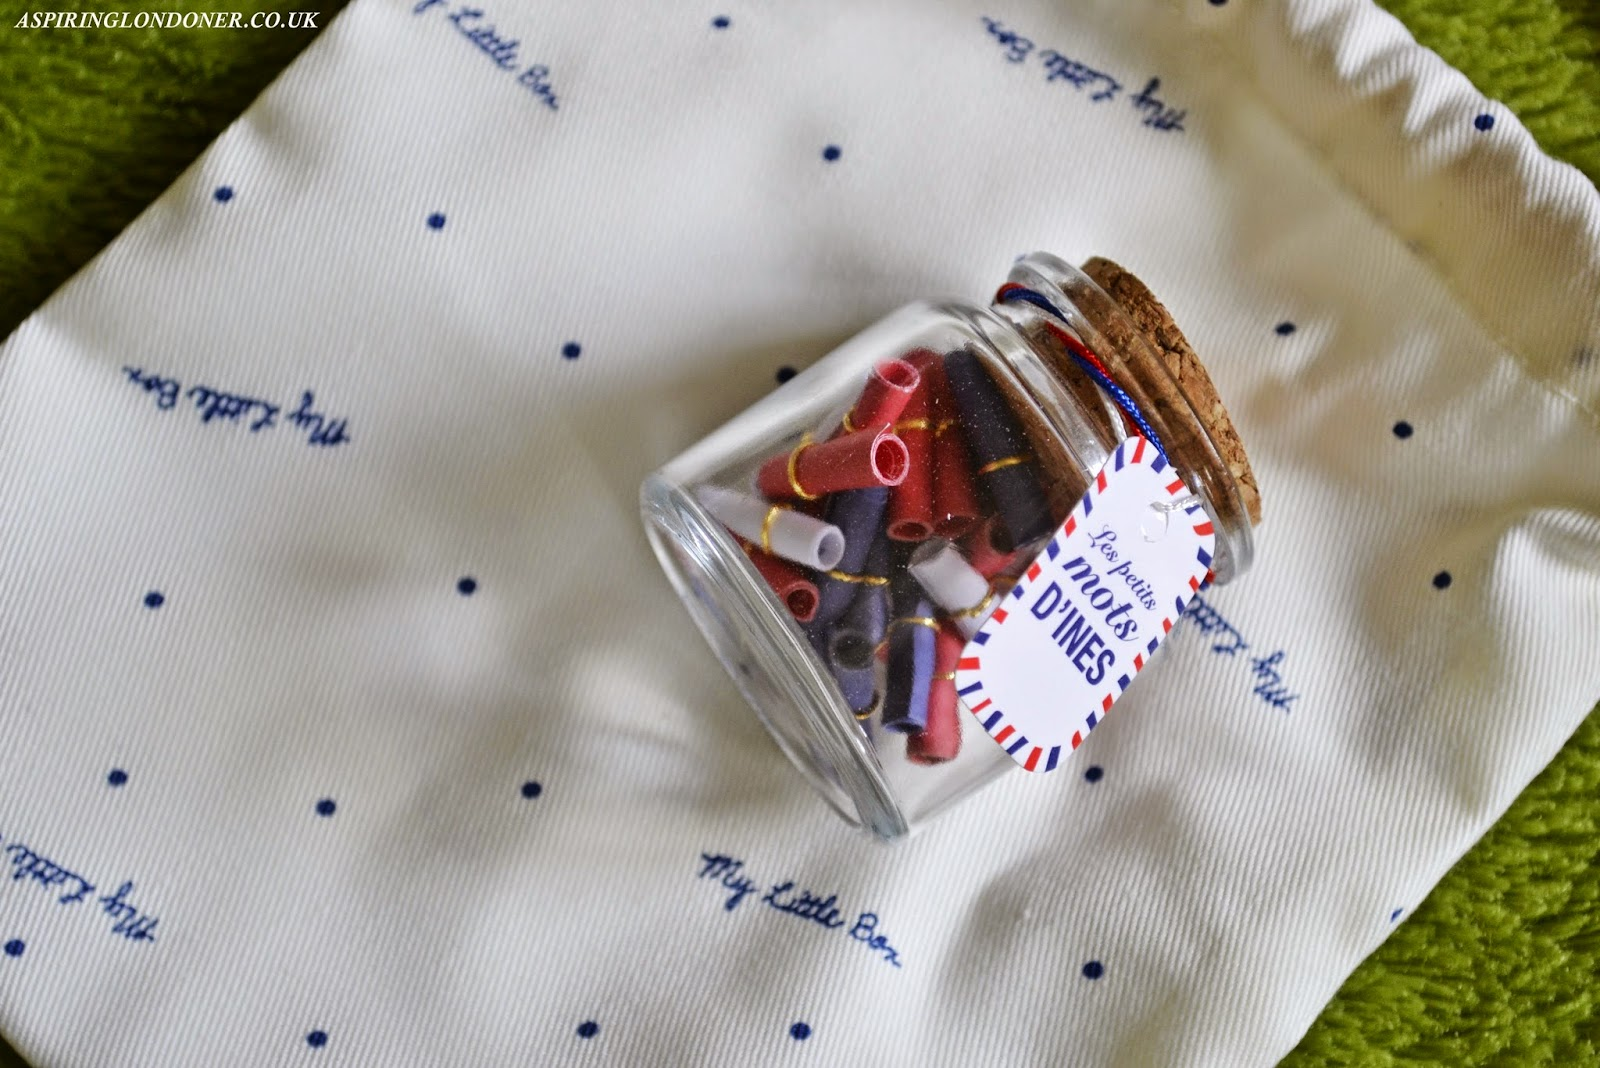 My Little Frenchie Box February 2015 Les Petits Mots D'Ines Review - Aspiring Londoner